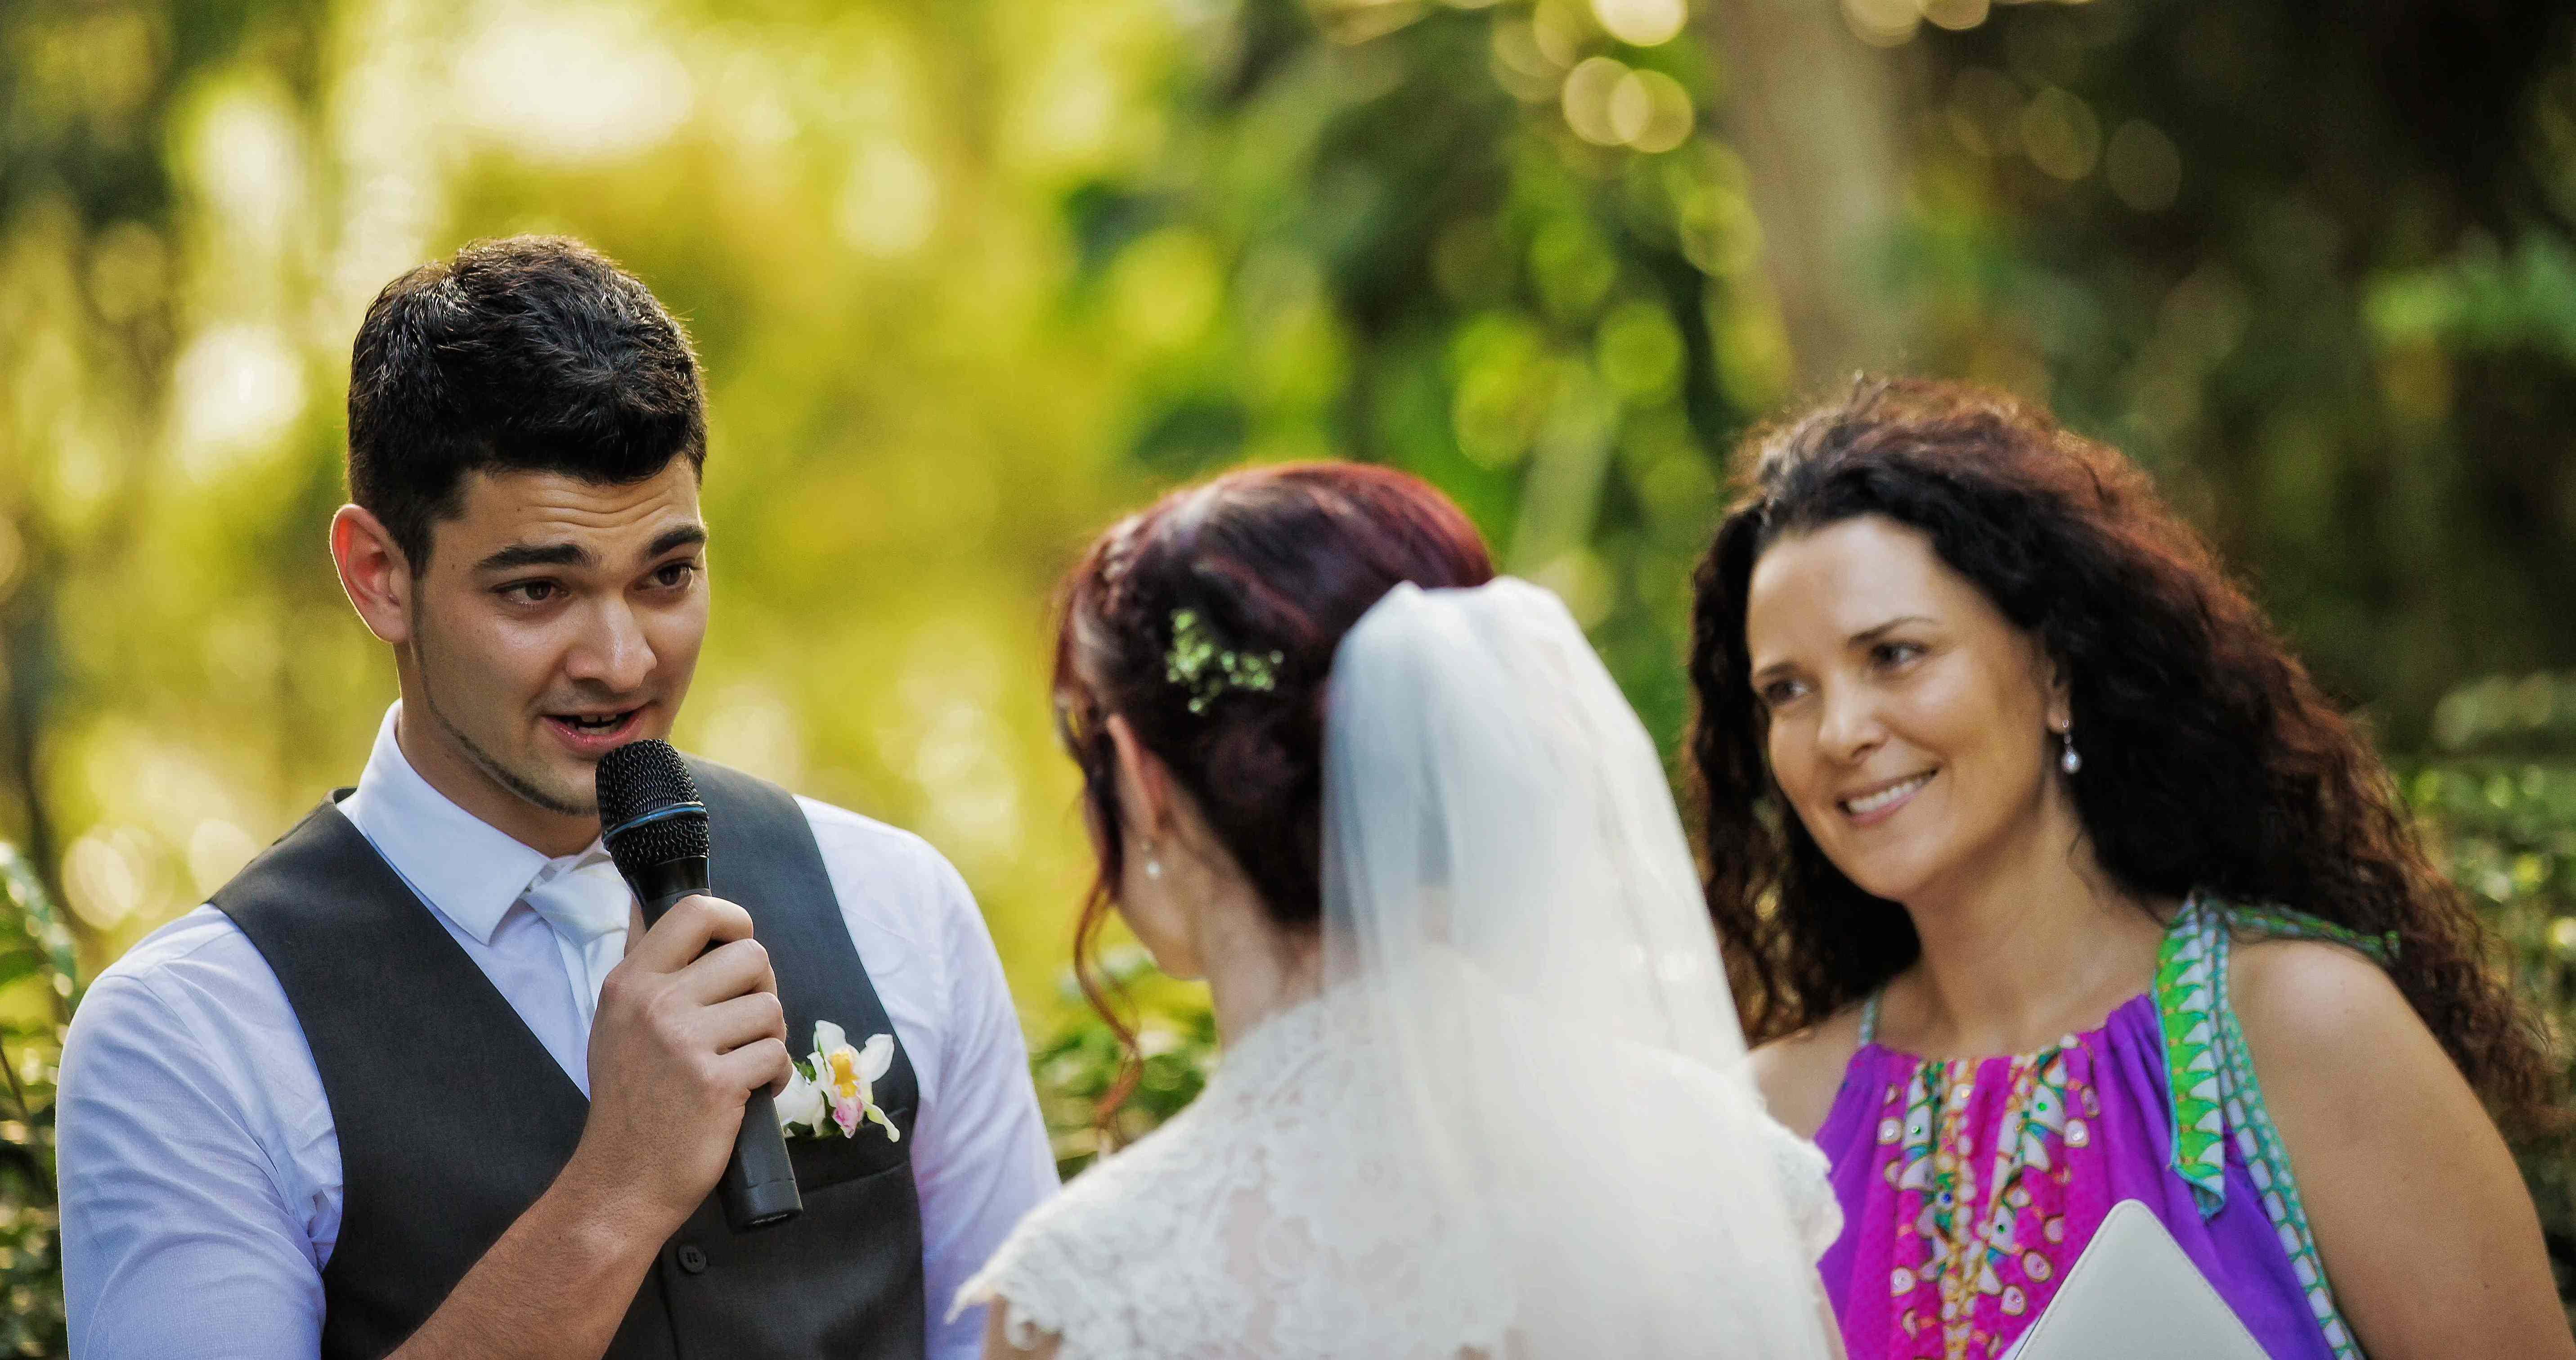 Suzanne-Riley-Marriage-Celebrant-Hayley-Eric-Forest-Sanctuary-Wedding-©-Sunshine-Coast-Wedding-Photographer-Ben-Connolly_226-2-copy1